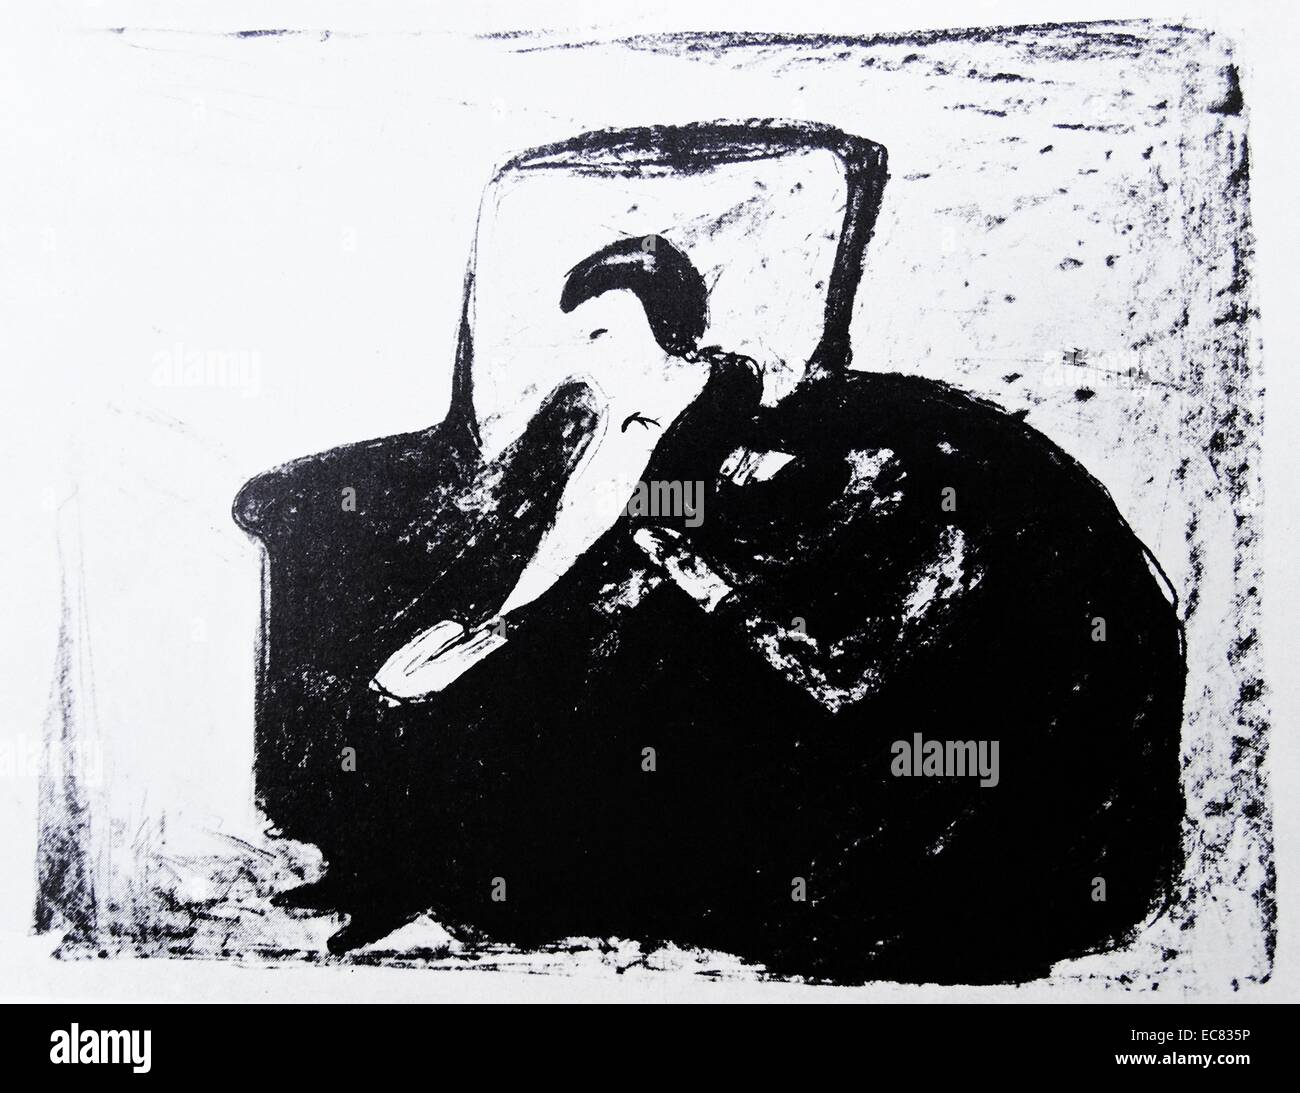 Work entitled Oswald's Collapse by Edvard Munch (1863-1944). The work was produced in 1920. - Stock Image